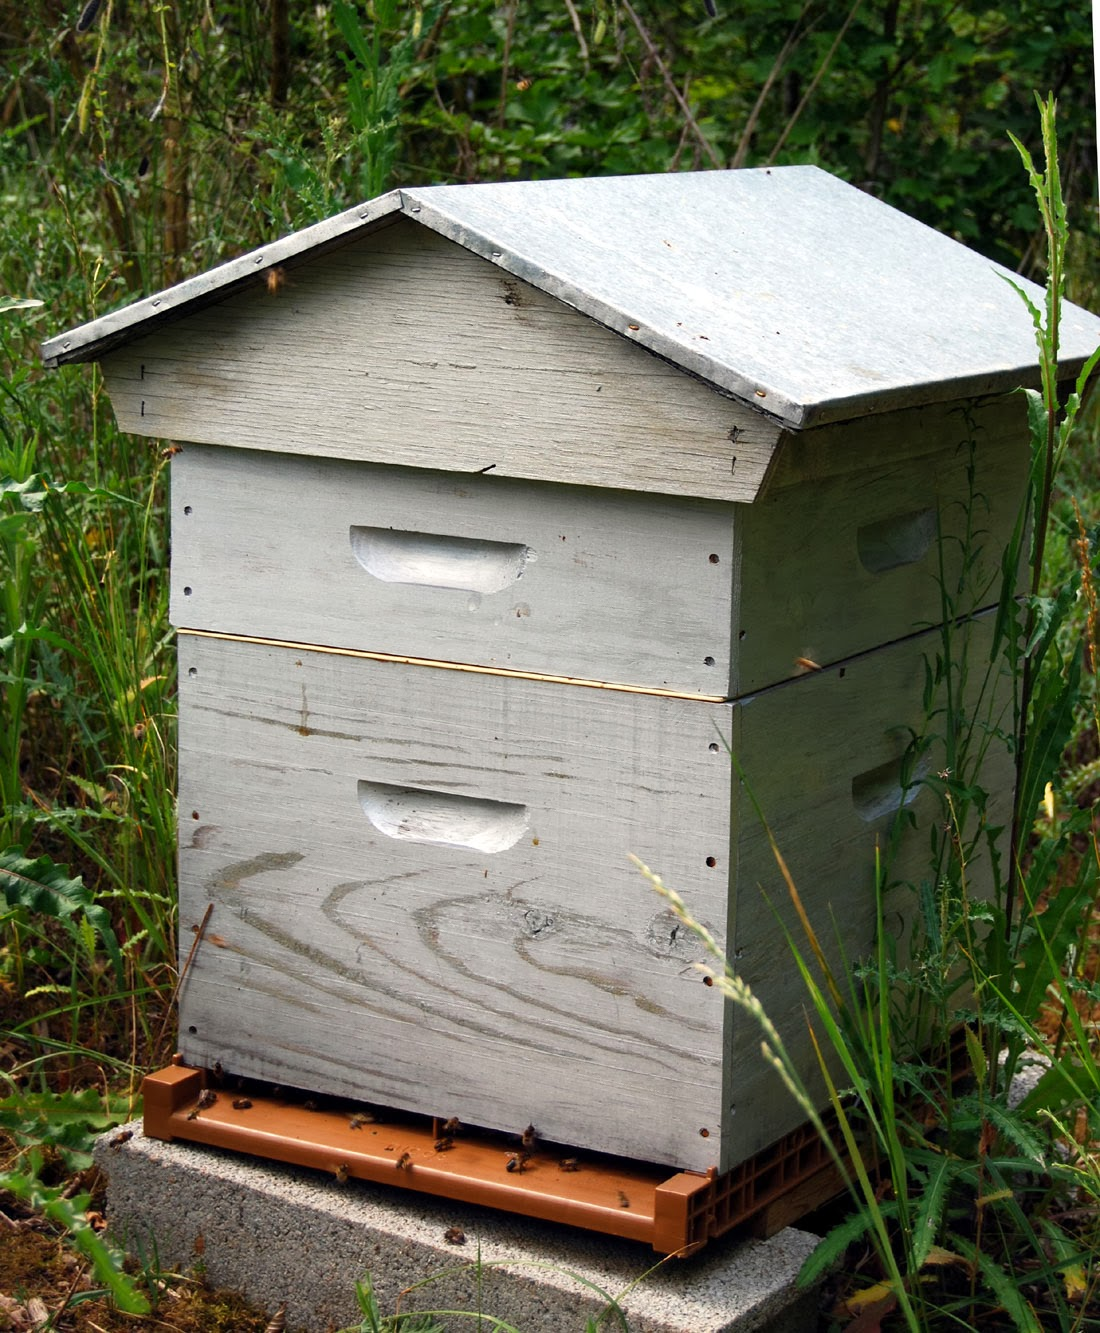 Dadant type honey bee hive in France